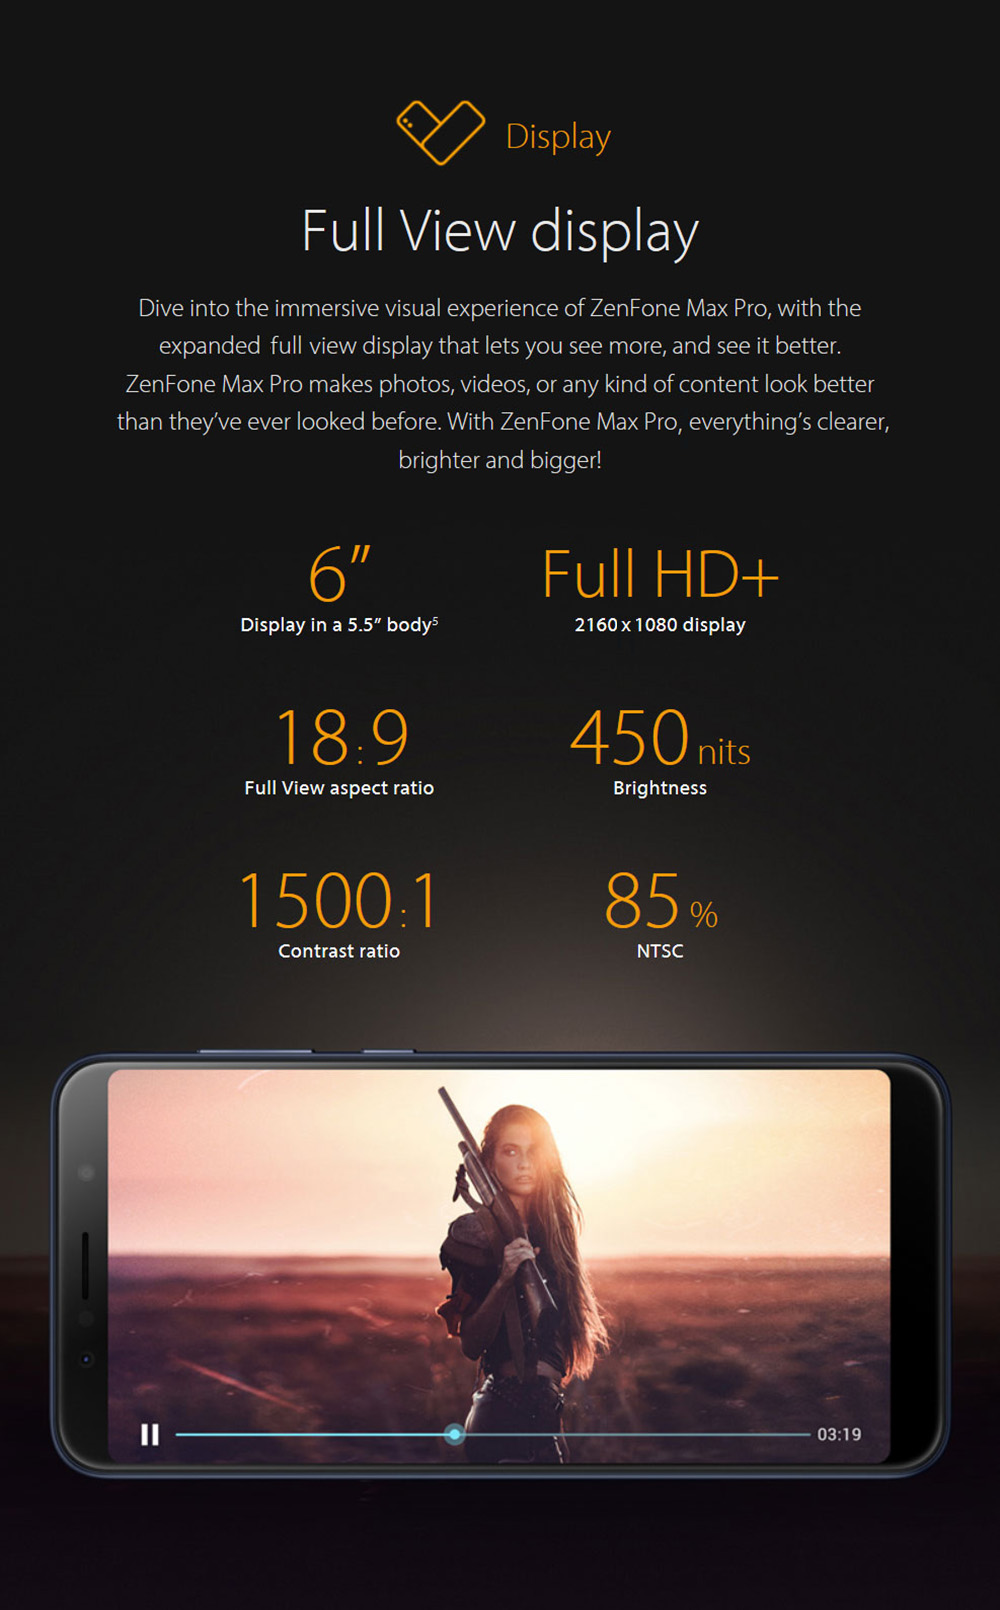 Asus Zenfone Max Pro M1 3gb Ram 4g Phablet Taiwan Version 60 Inch Android 81 Oreo Qualcomm Snapdragon